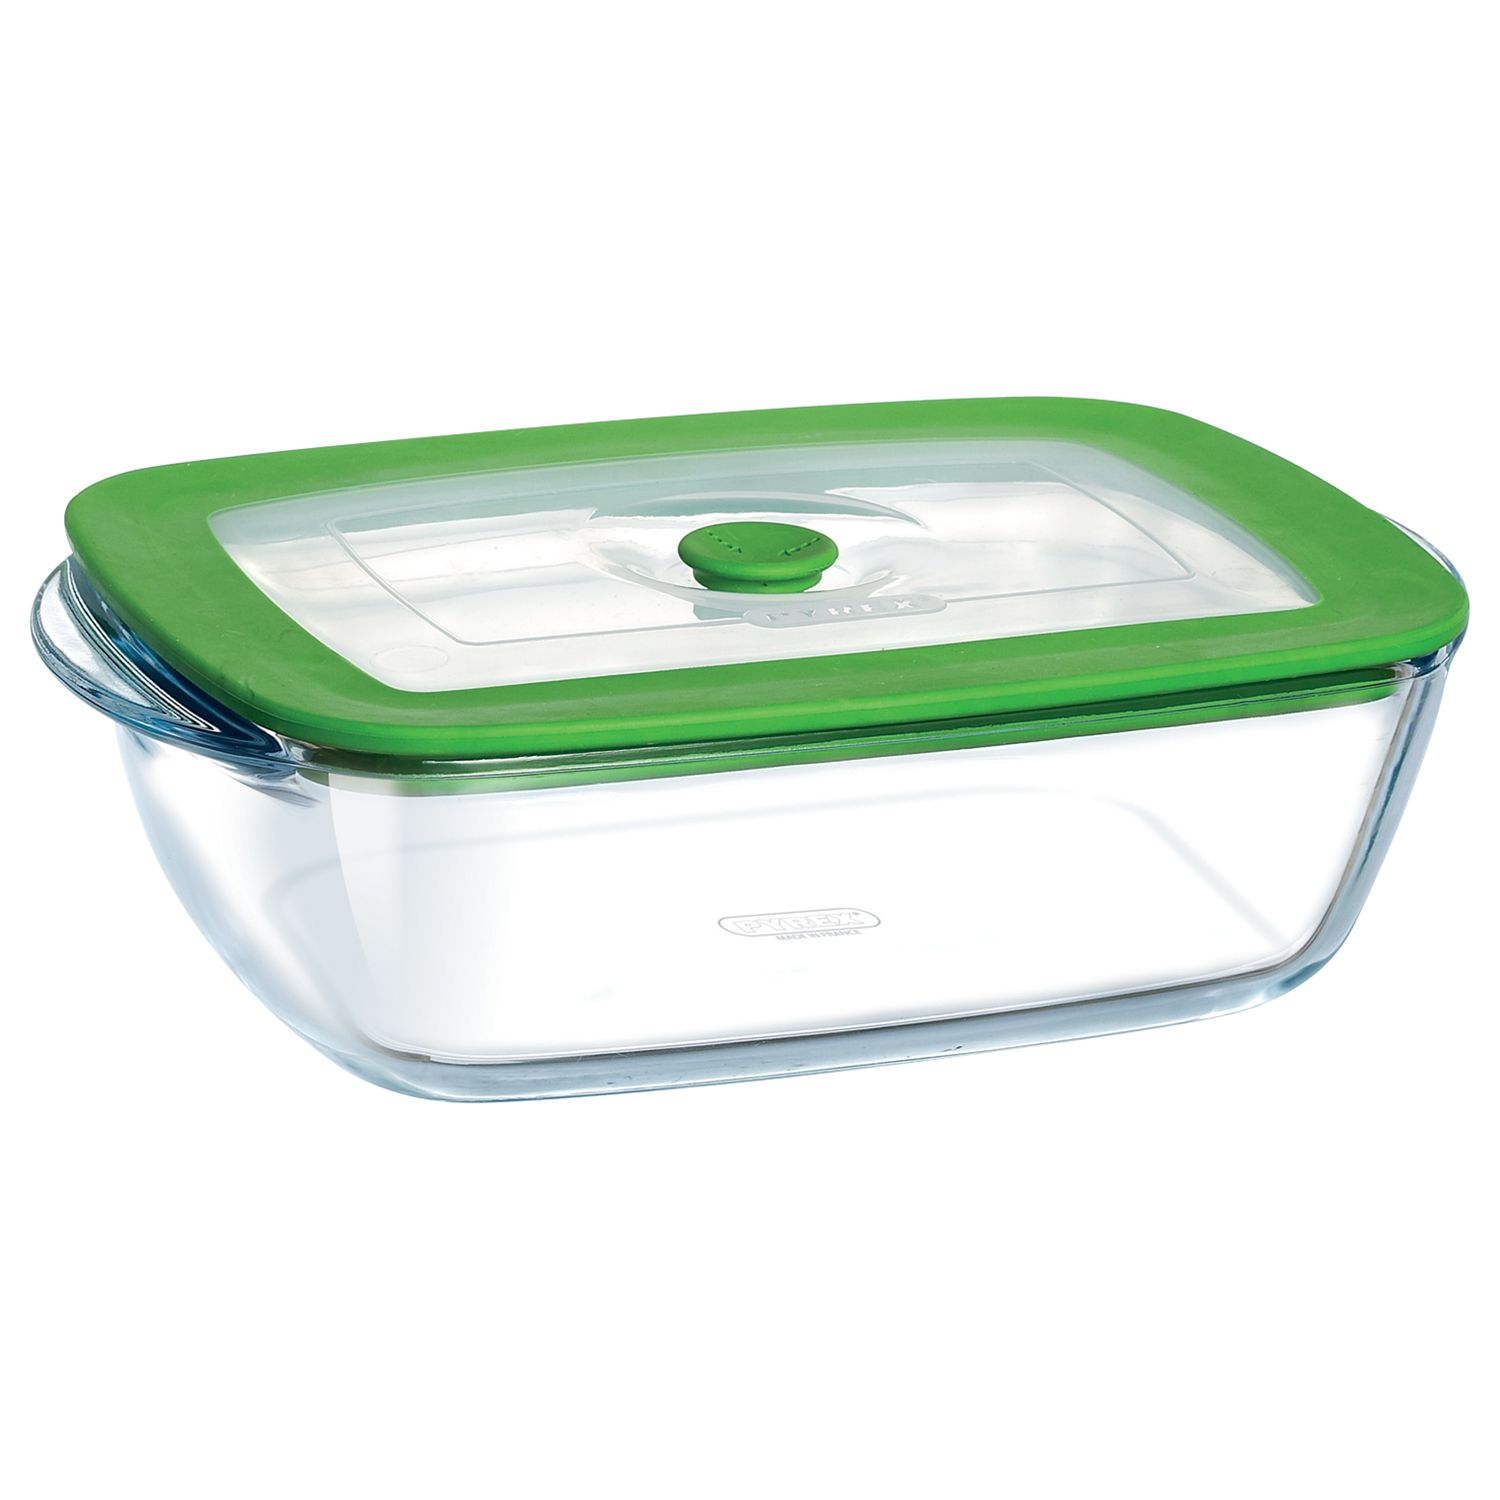 Pyrex Pyrex Rectangular Dish with Lid, 2.6L